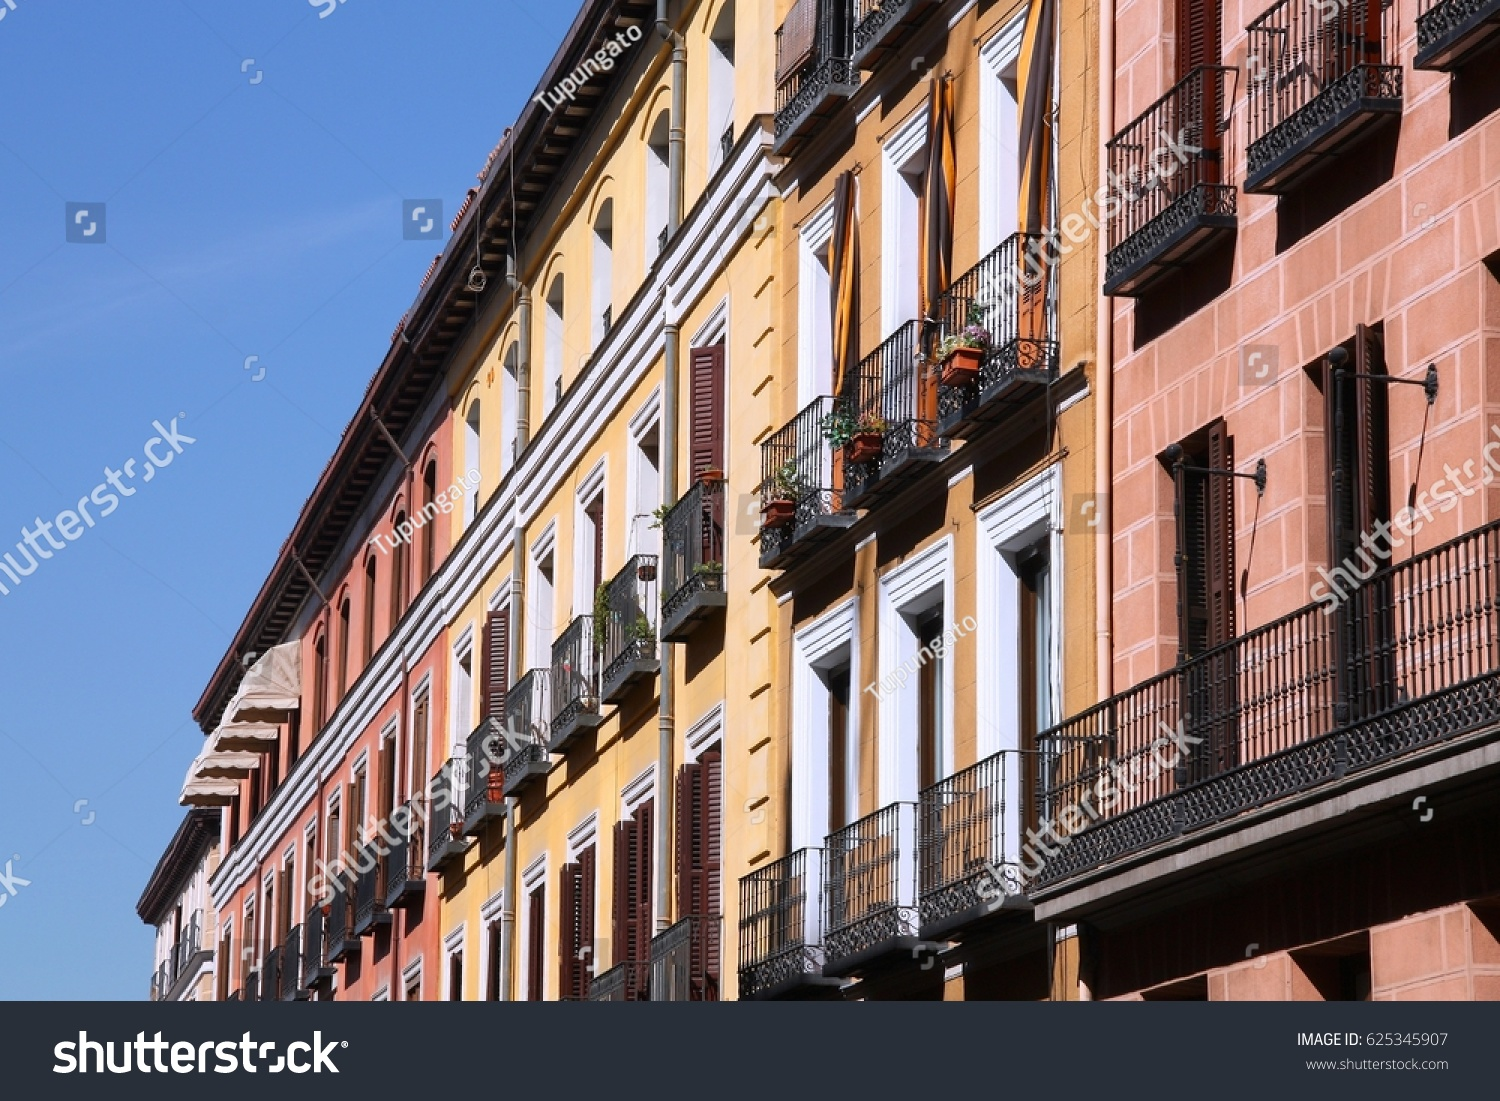 Mediterranean Architecture In Spain. Old Apartment Buildings In Madrid    Calle Mayor.